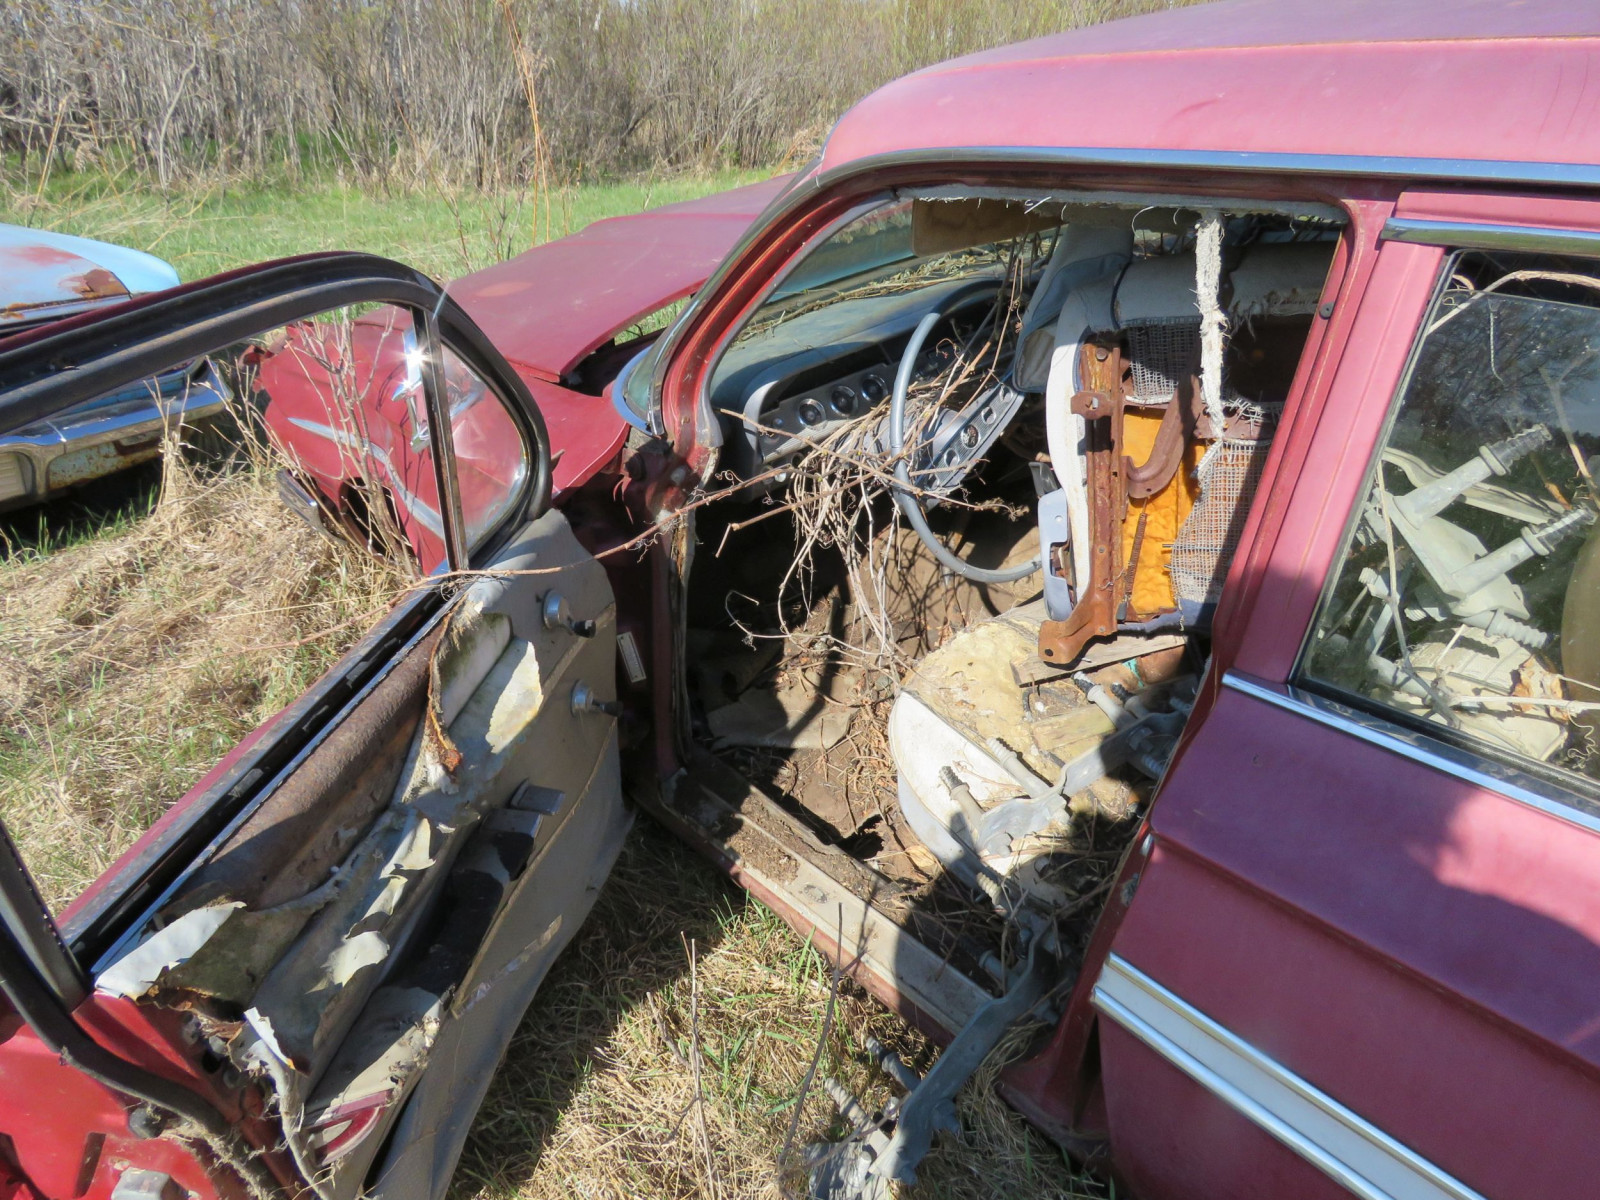 1961 Chevrolet 4dr Sedan parts only - Image 3